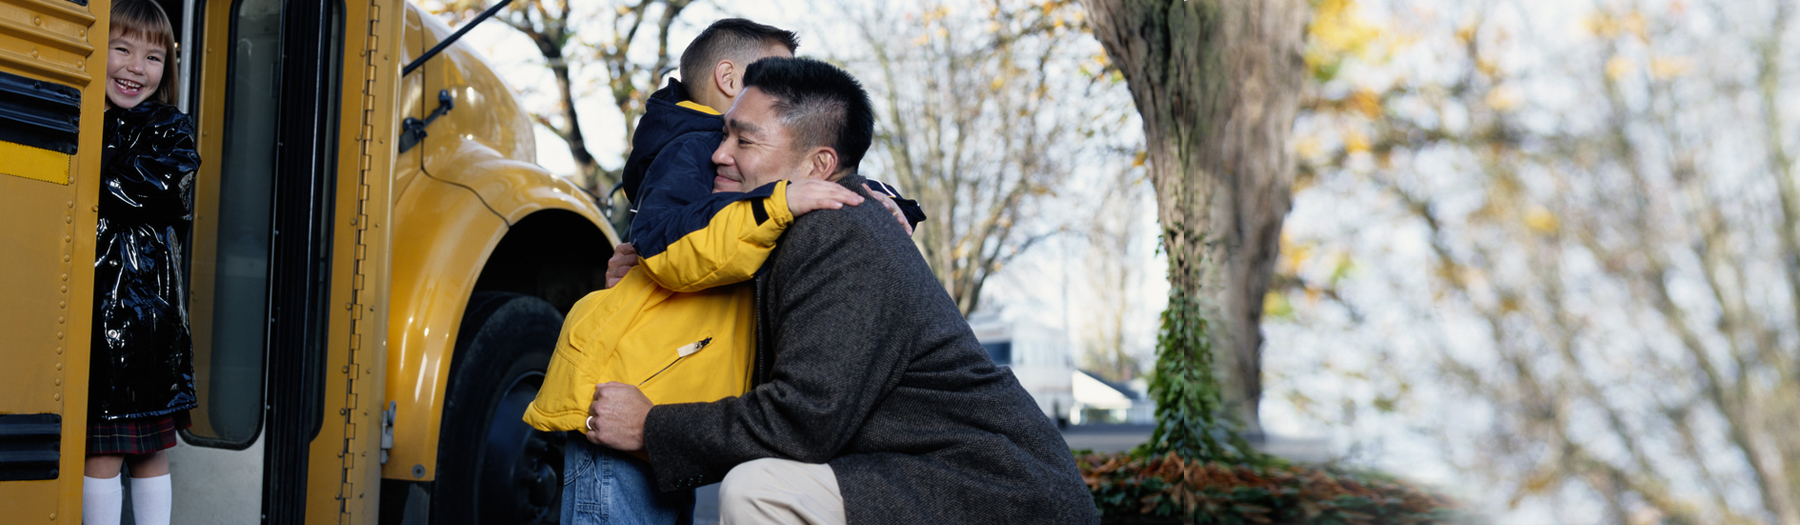 Parent hugging child by a school bus